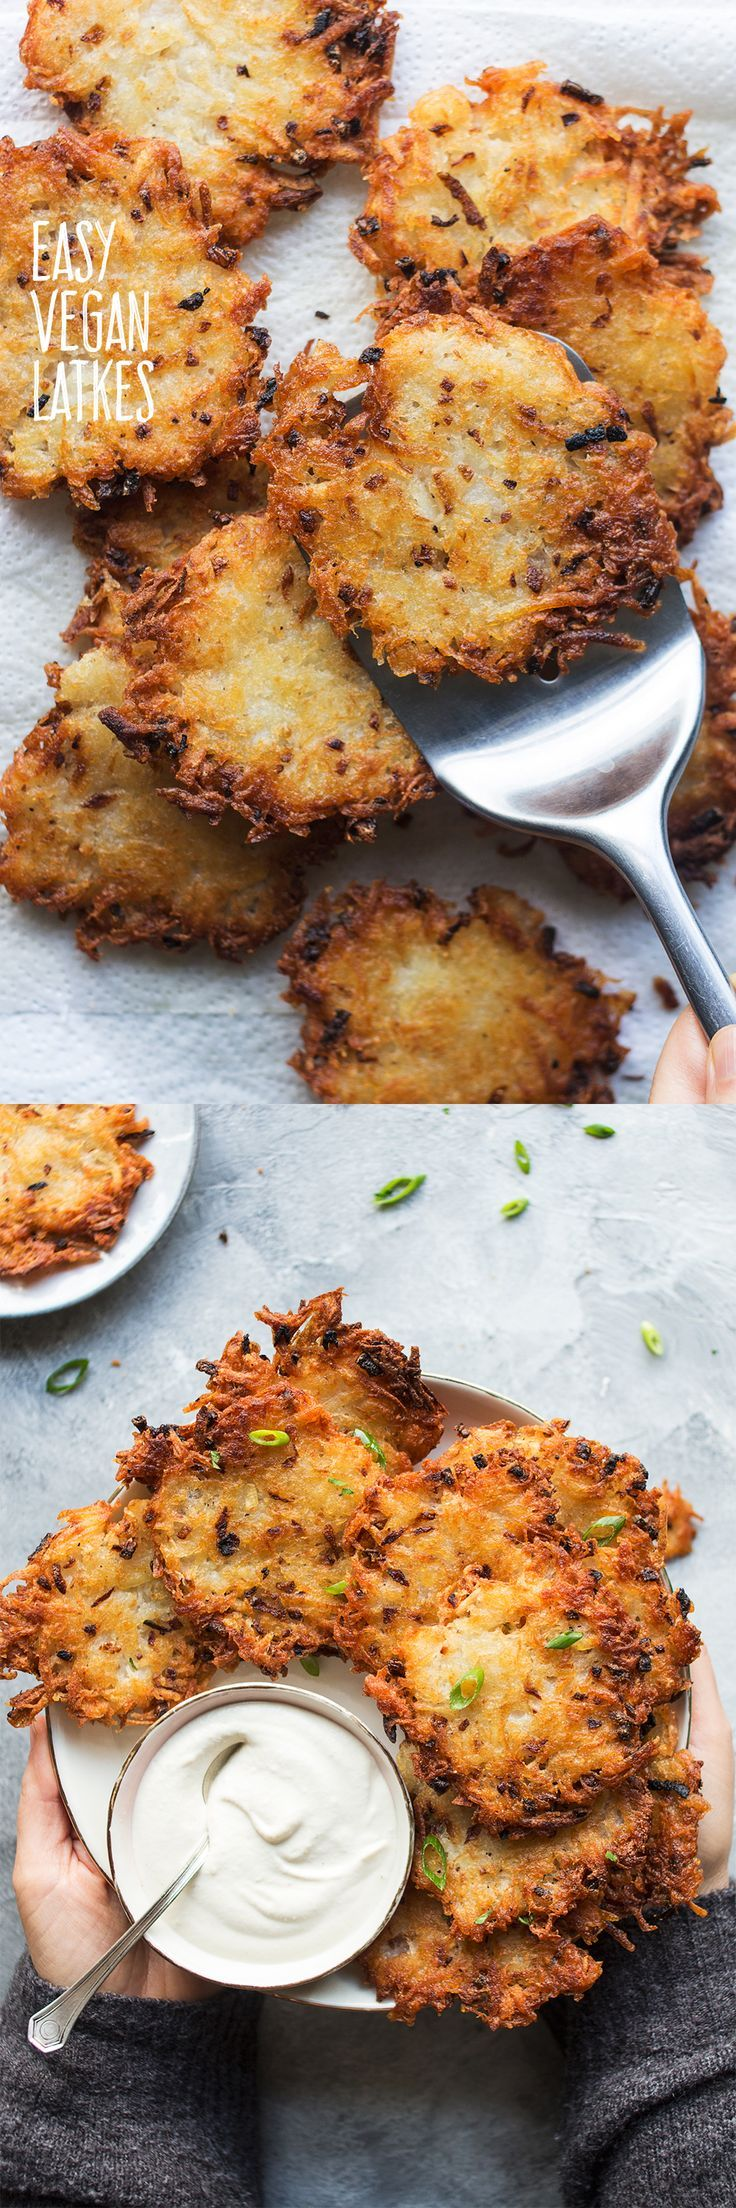 Easy eggless latkes